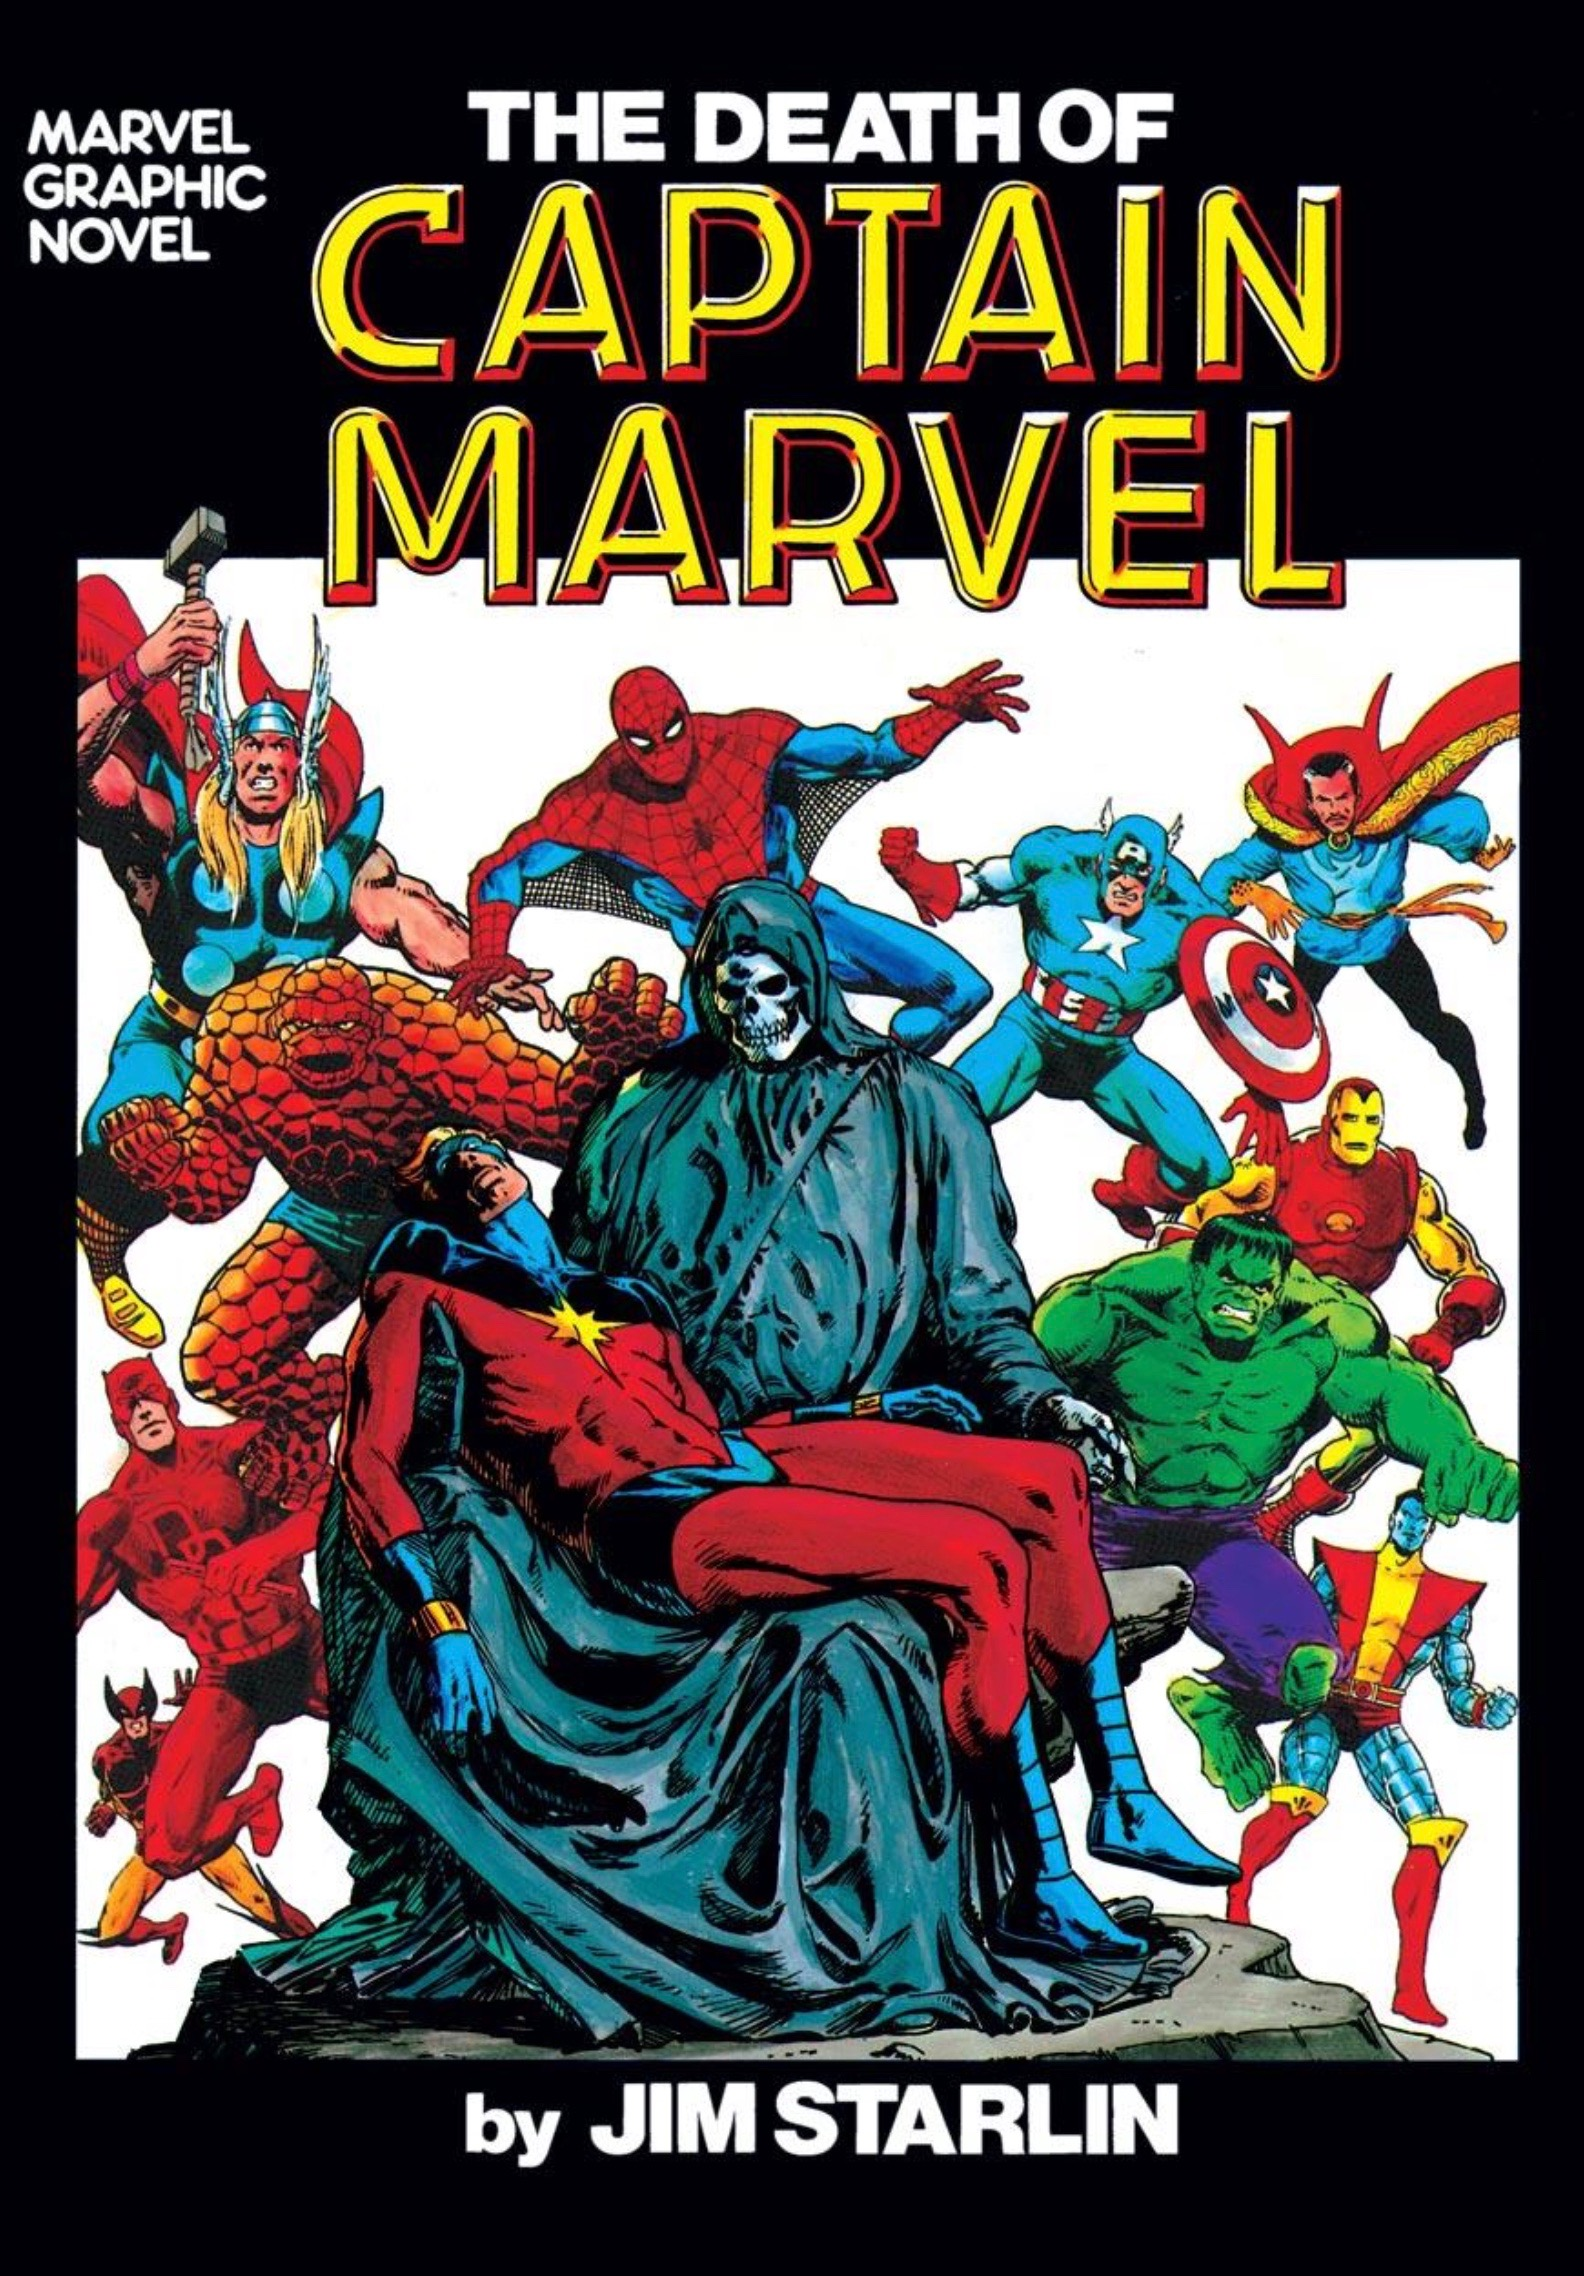 The Death of Captain Marvel